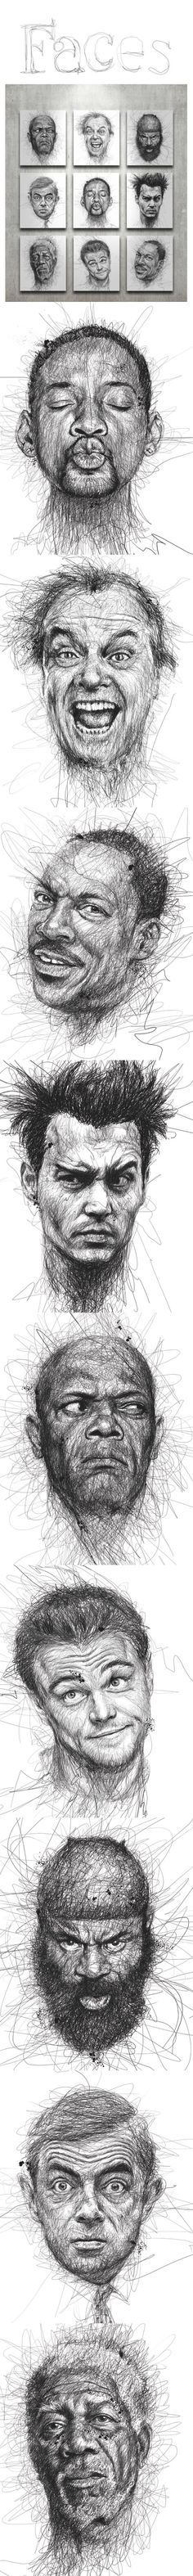 Faces by Vince Low #celebs #faces #art #drawing #pen #penart